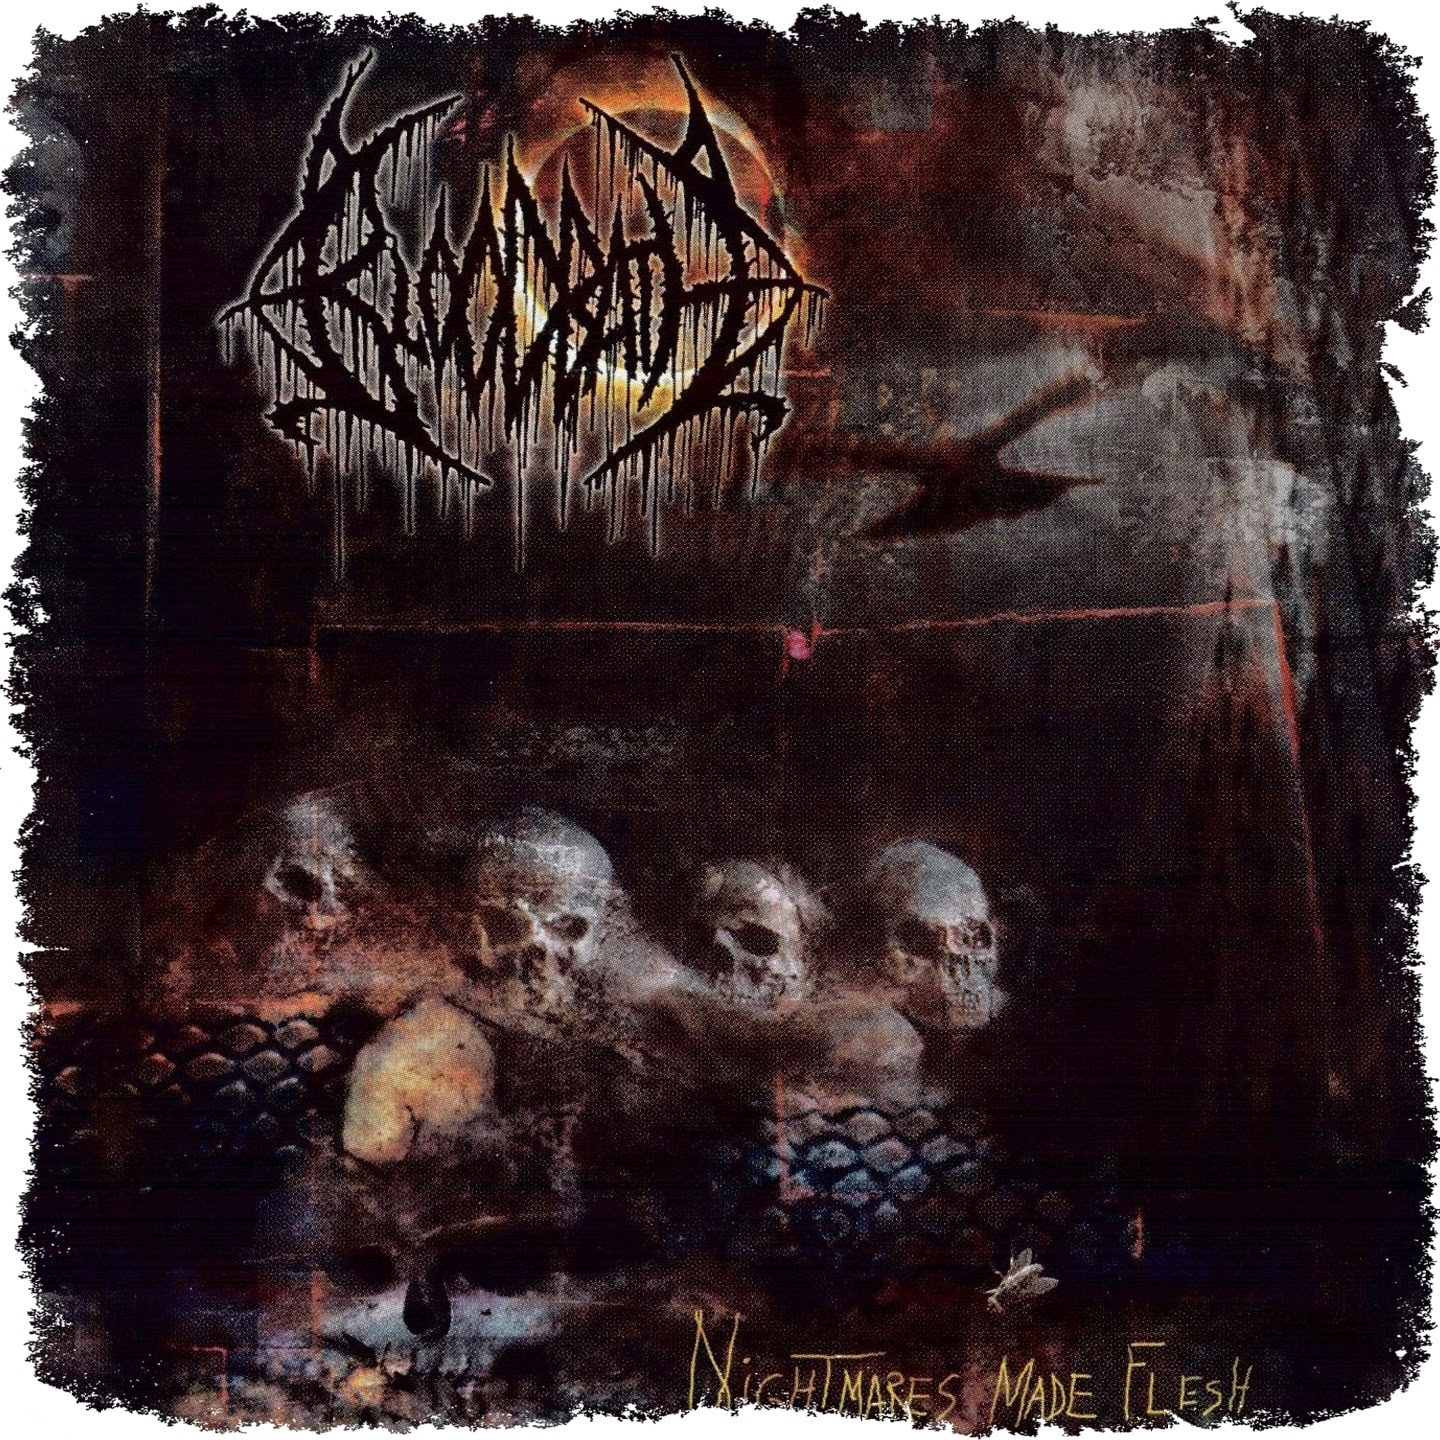 Metal Brutal Argentino Bloodbath Nightmares Made Flesh 2004 The Little Things She Needs Malmo Black White Tsn0001342c0256 Hitam 38 01 Cancer Of Soul